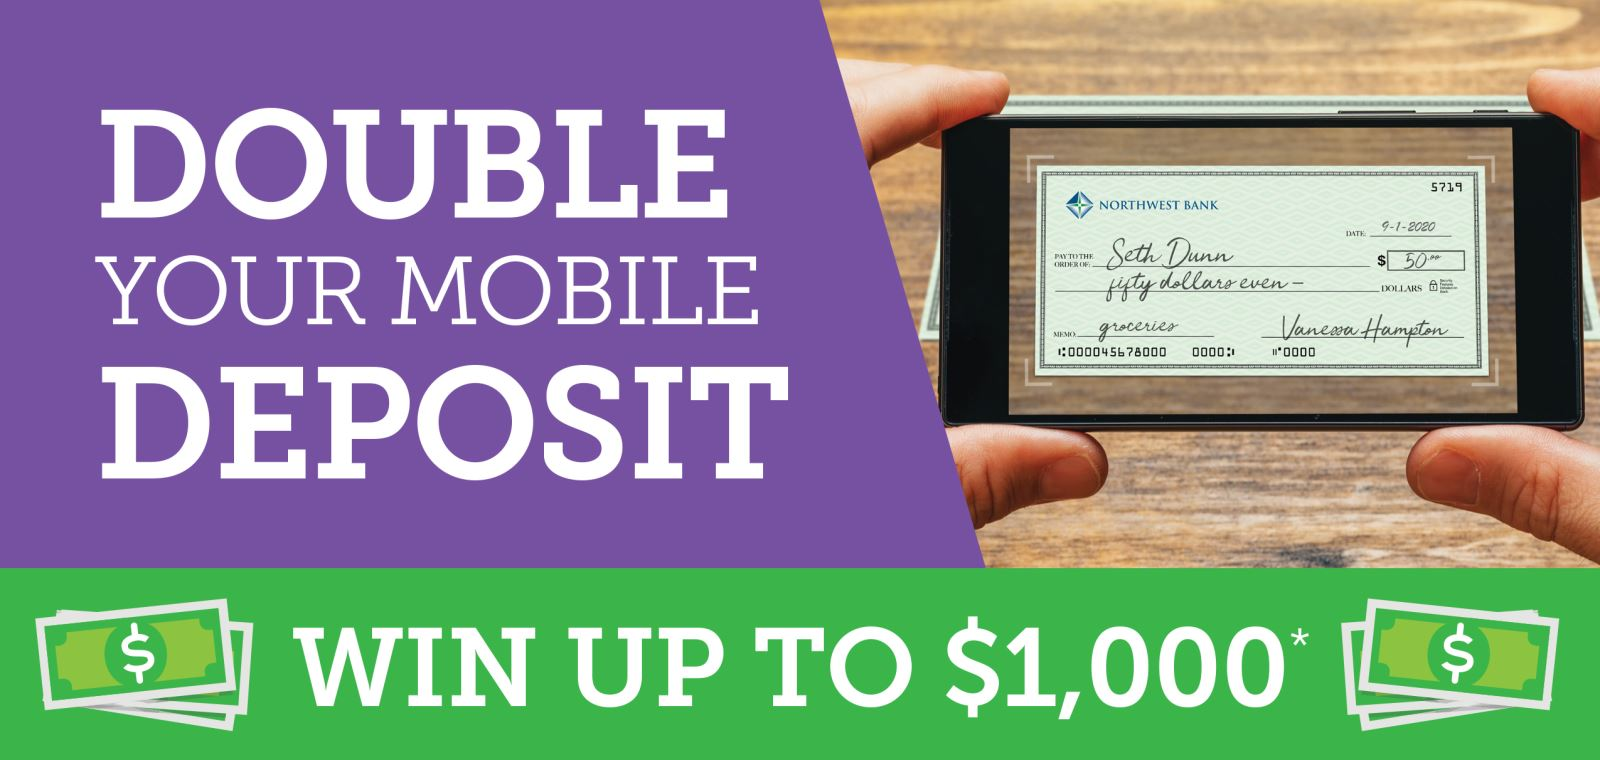 Double Your Mobile Deposit. Win Up To $1,000*